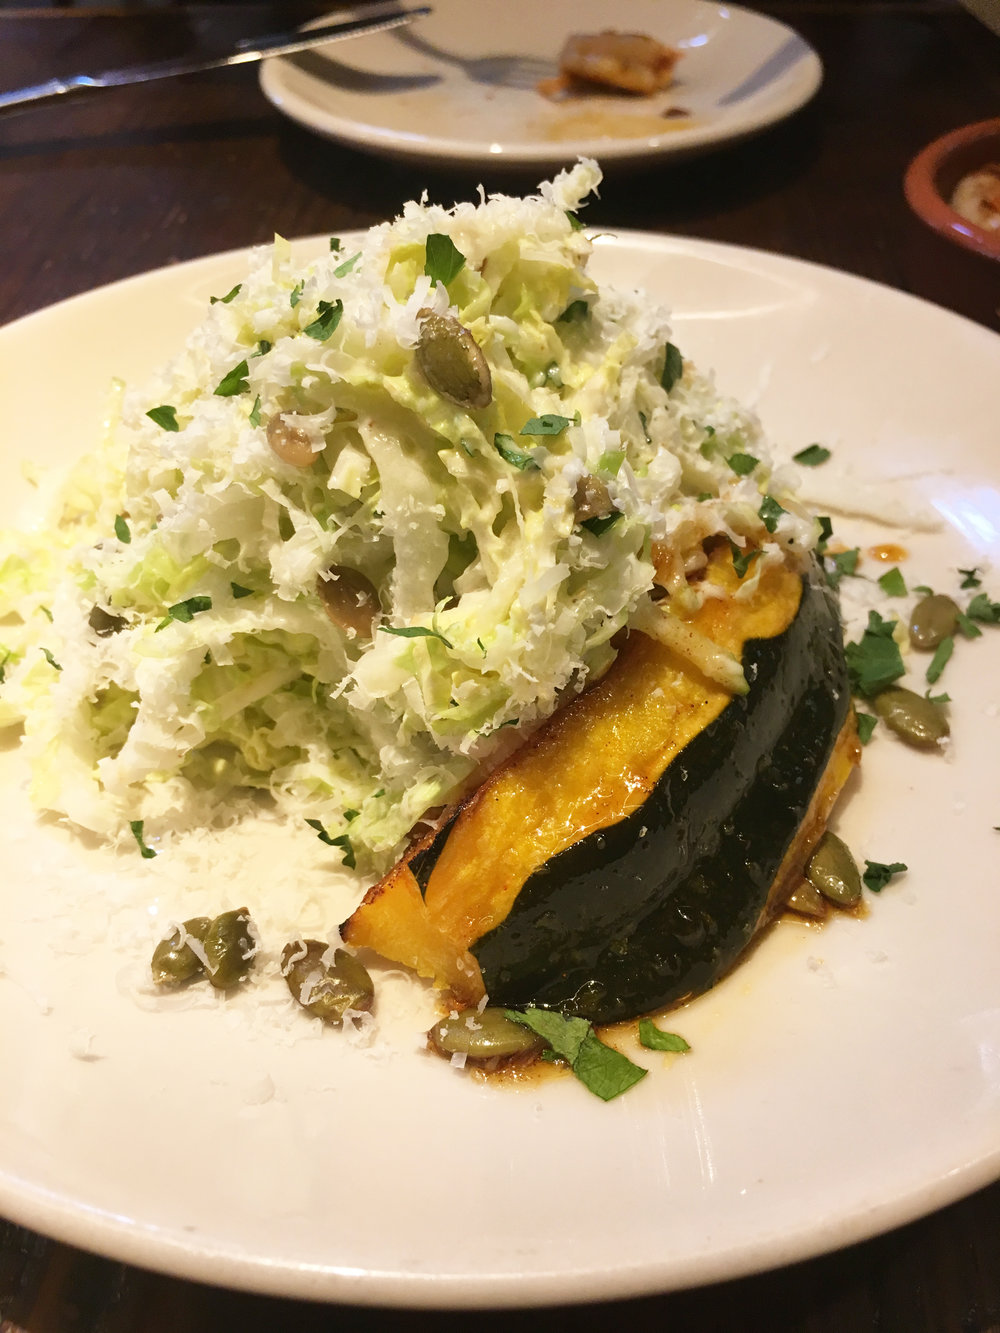 Napa cabbage + apple slaw with creamy shallot-lime vinaigrette, roasted acorn squash, pepitas